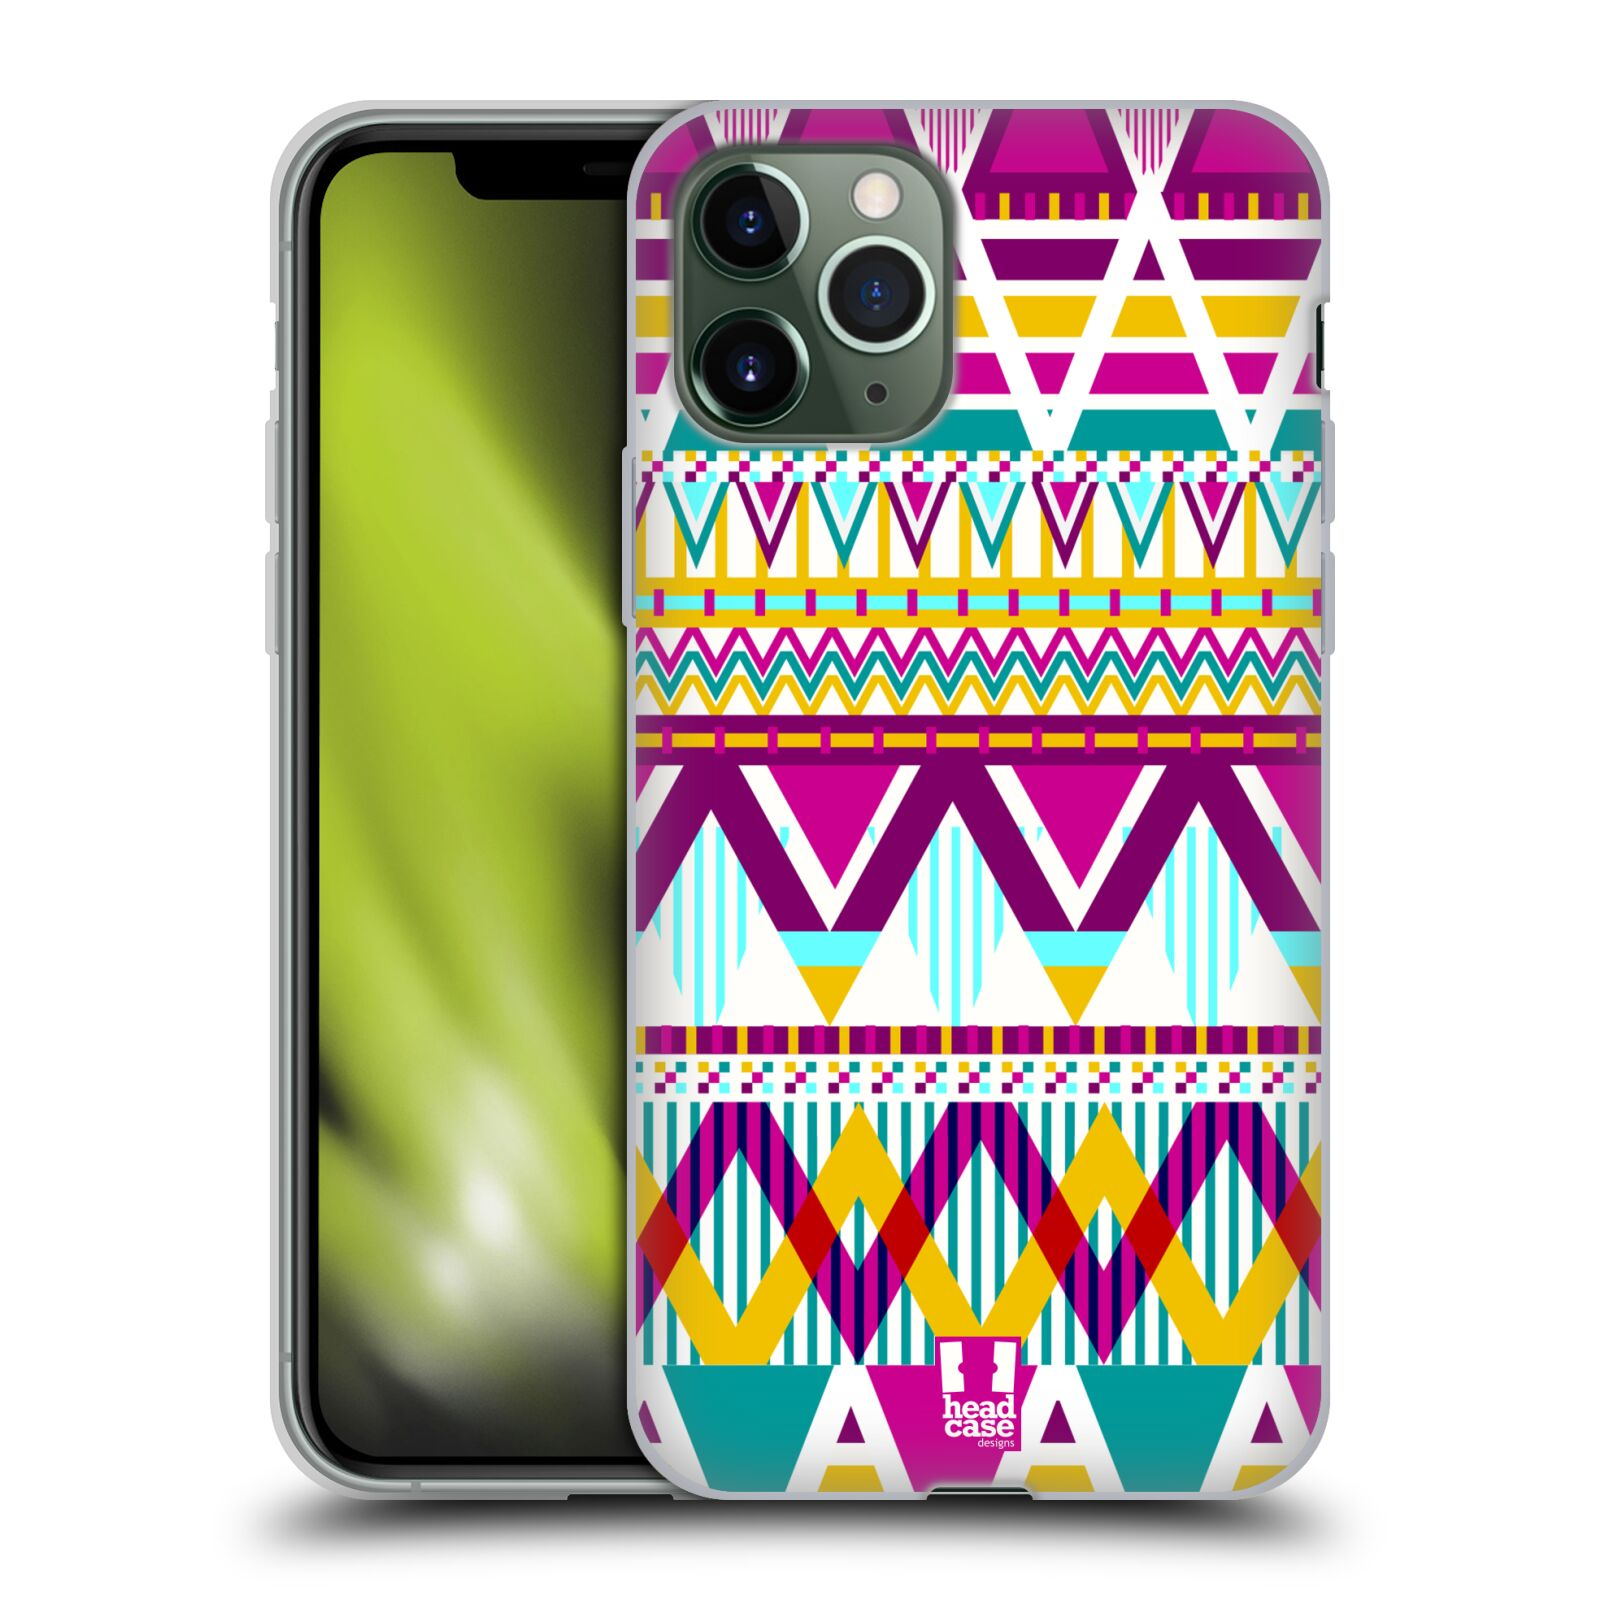 victoria obaly iphone xr - Silikonové pouzdro na mobil Apple iPhone 11 Pro - Head Case - AZTEC SUGARED